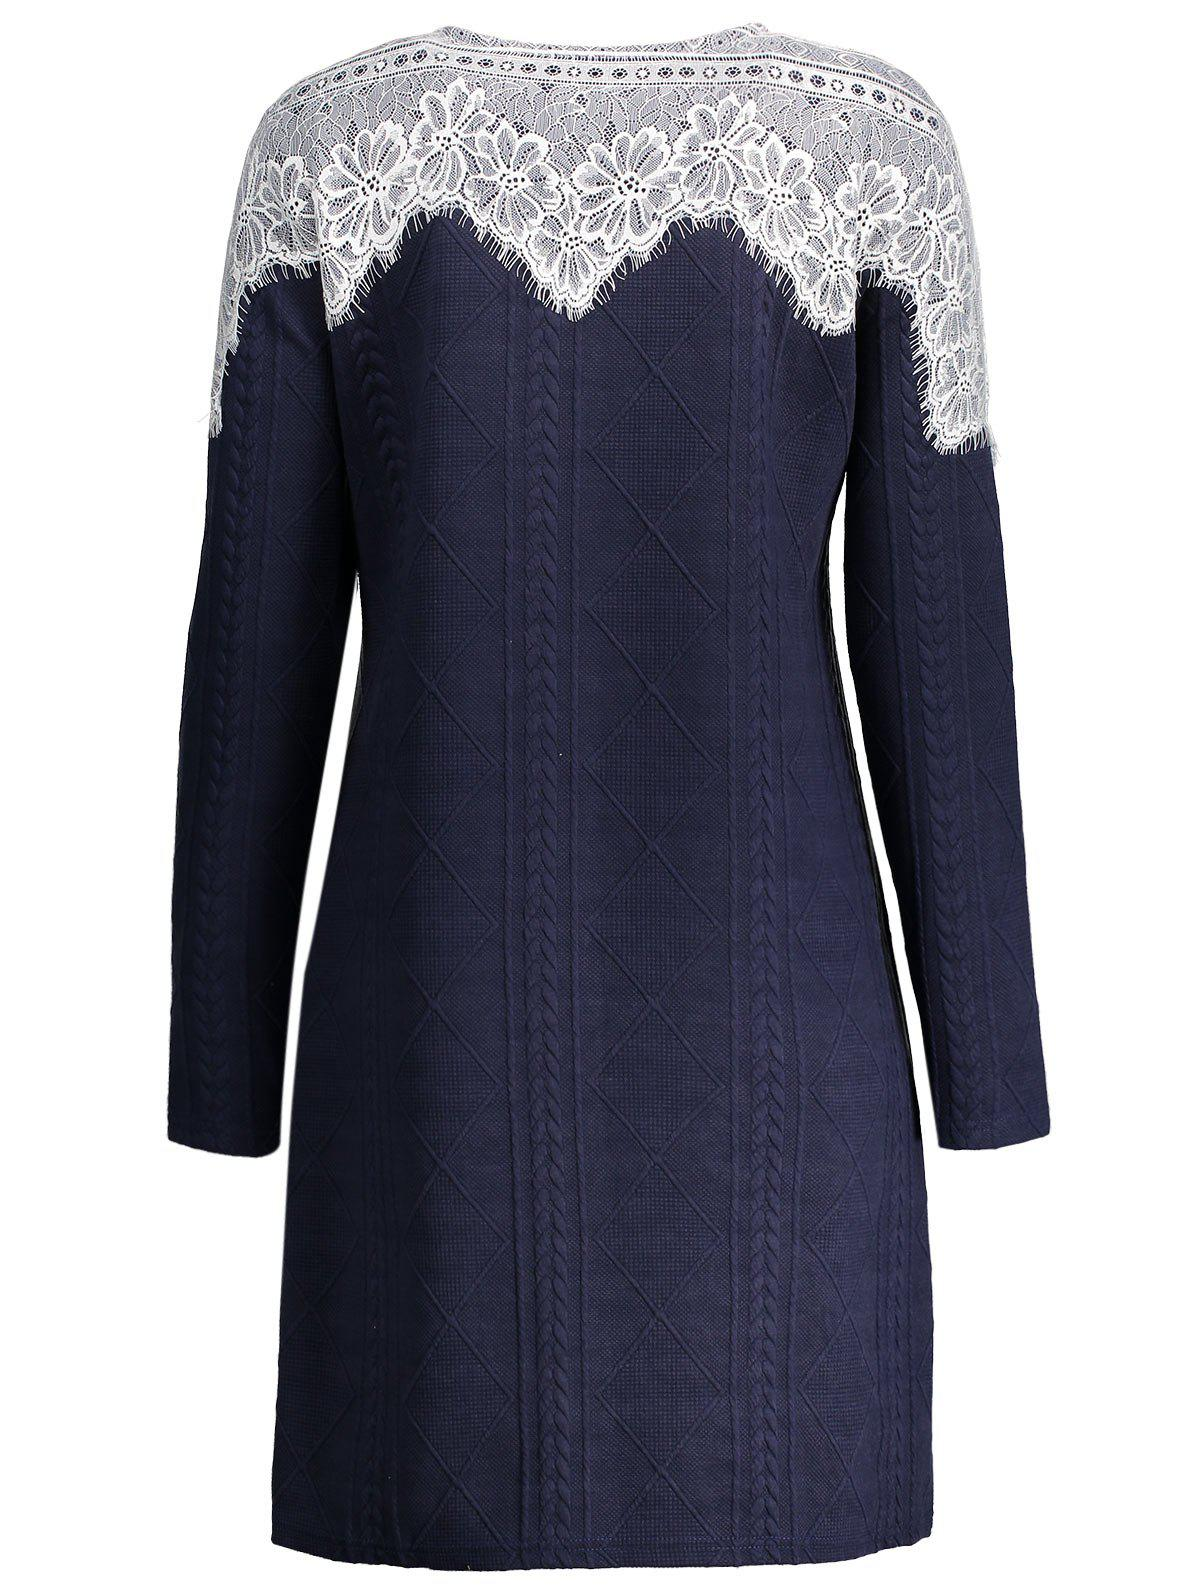 Lace Insert Plus Size Long Sleeve Dress - Bleu Foncé 5XL